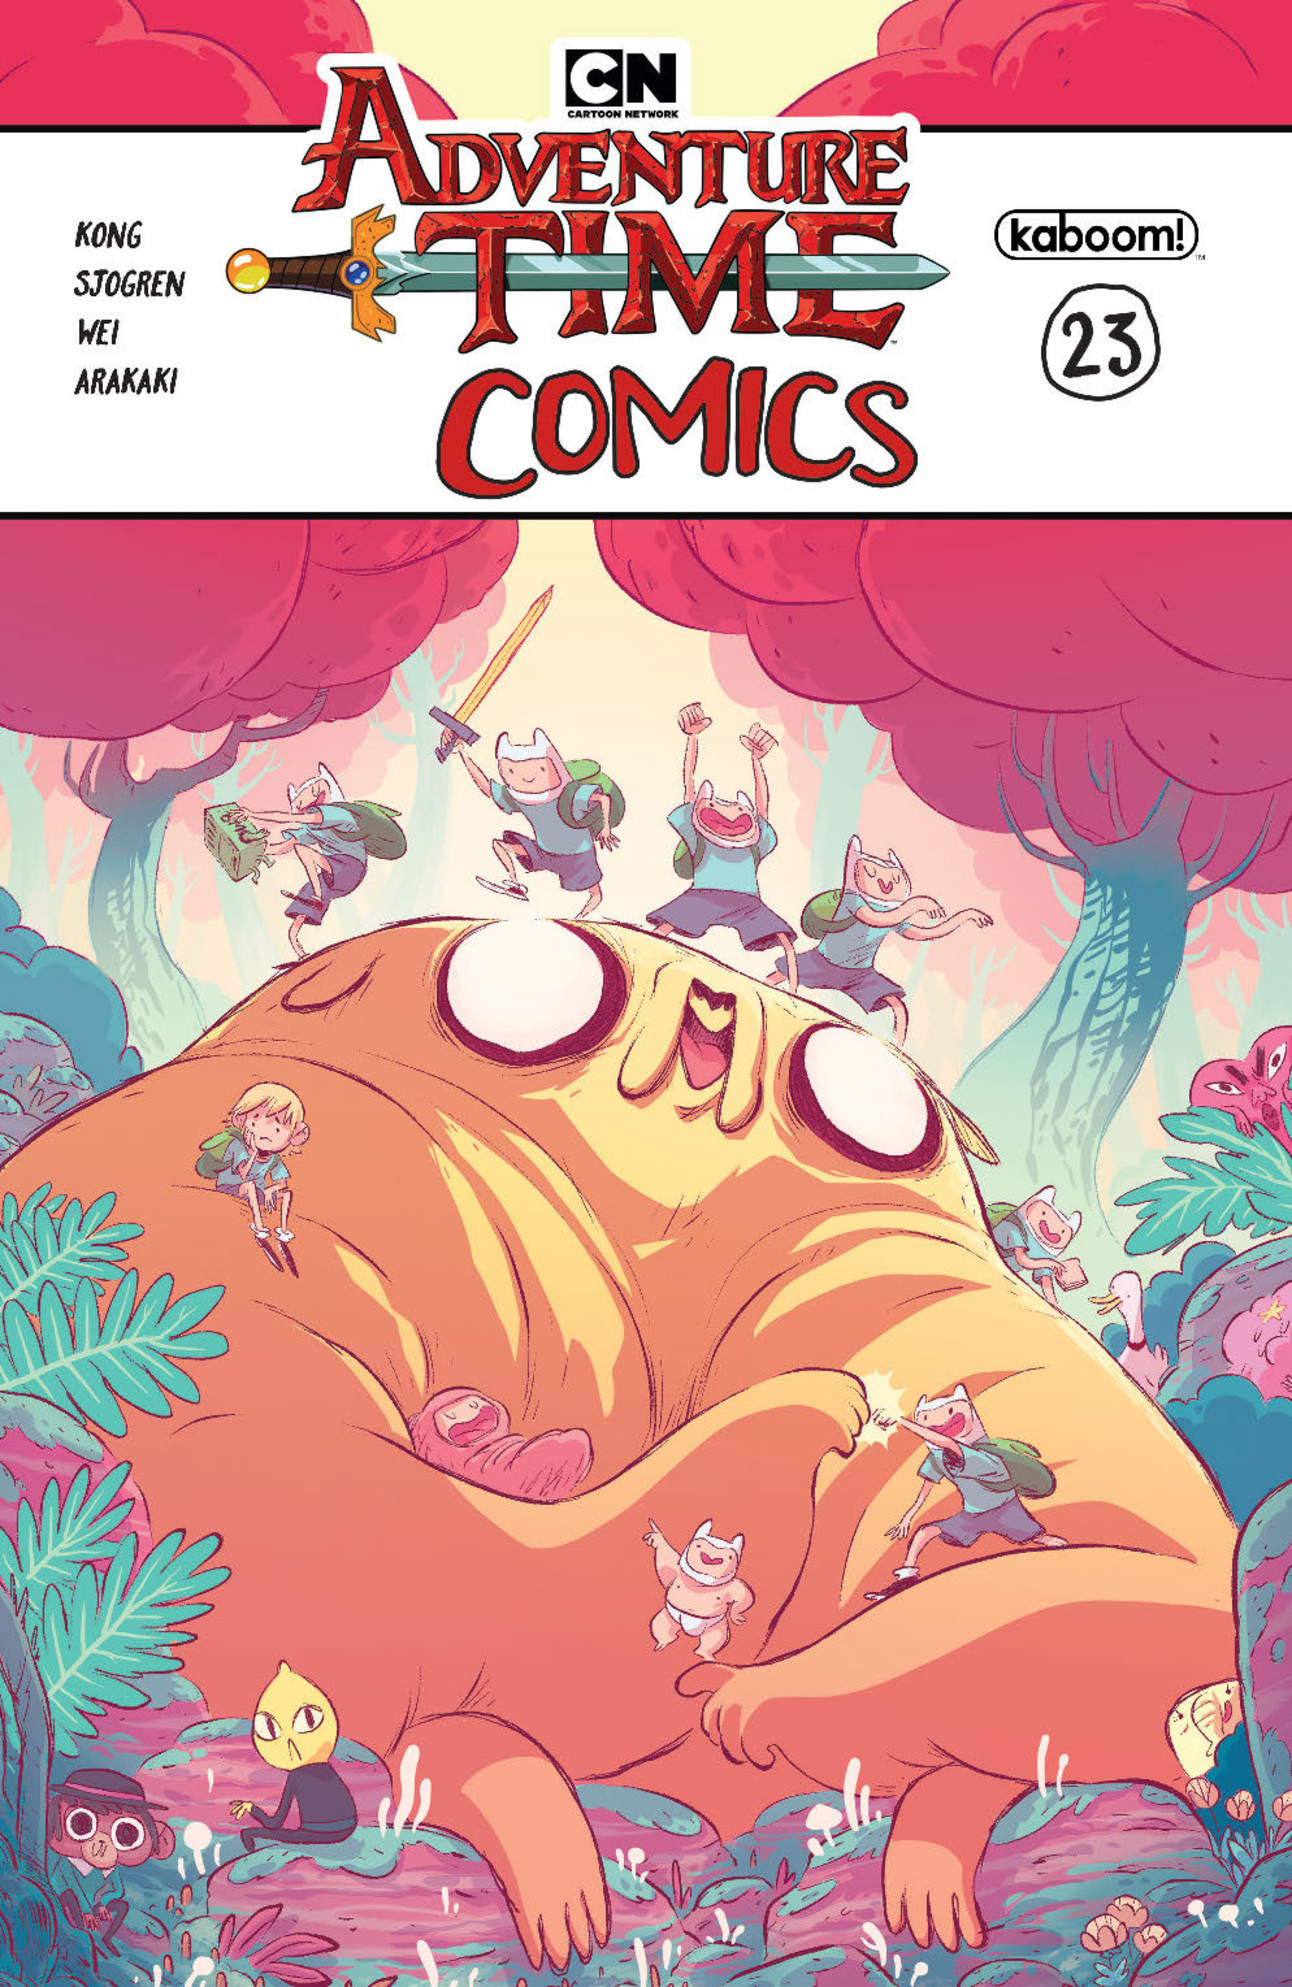 boom_adventure_time_comics_23_cover.jpg